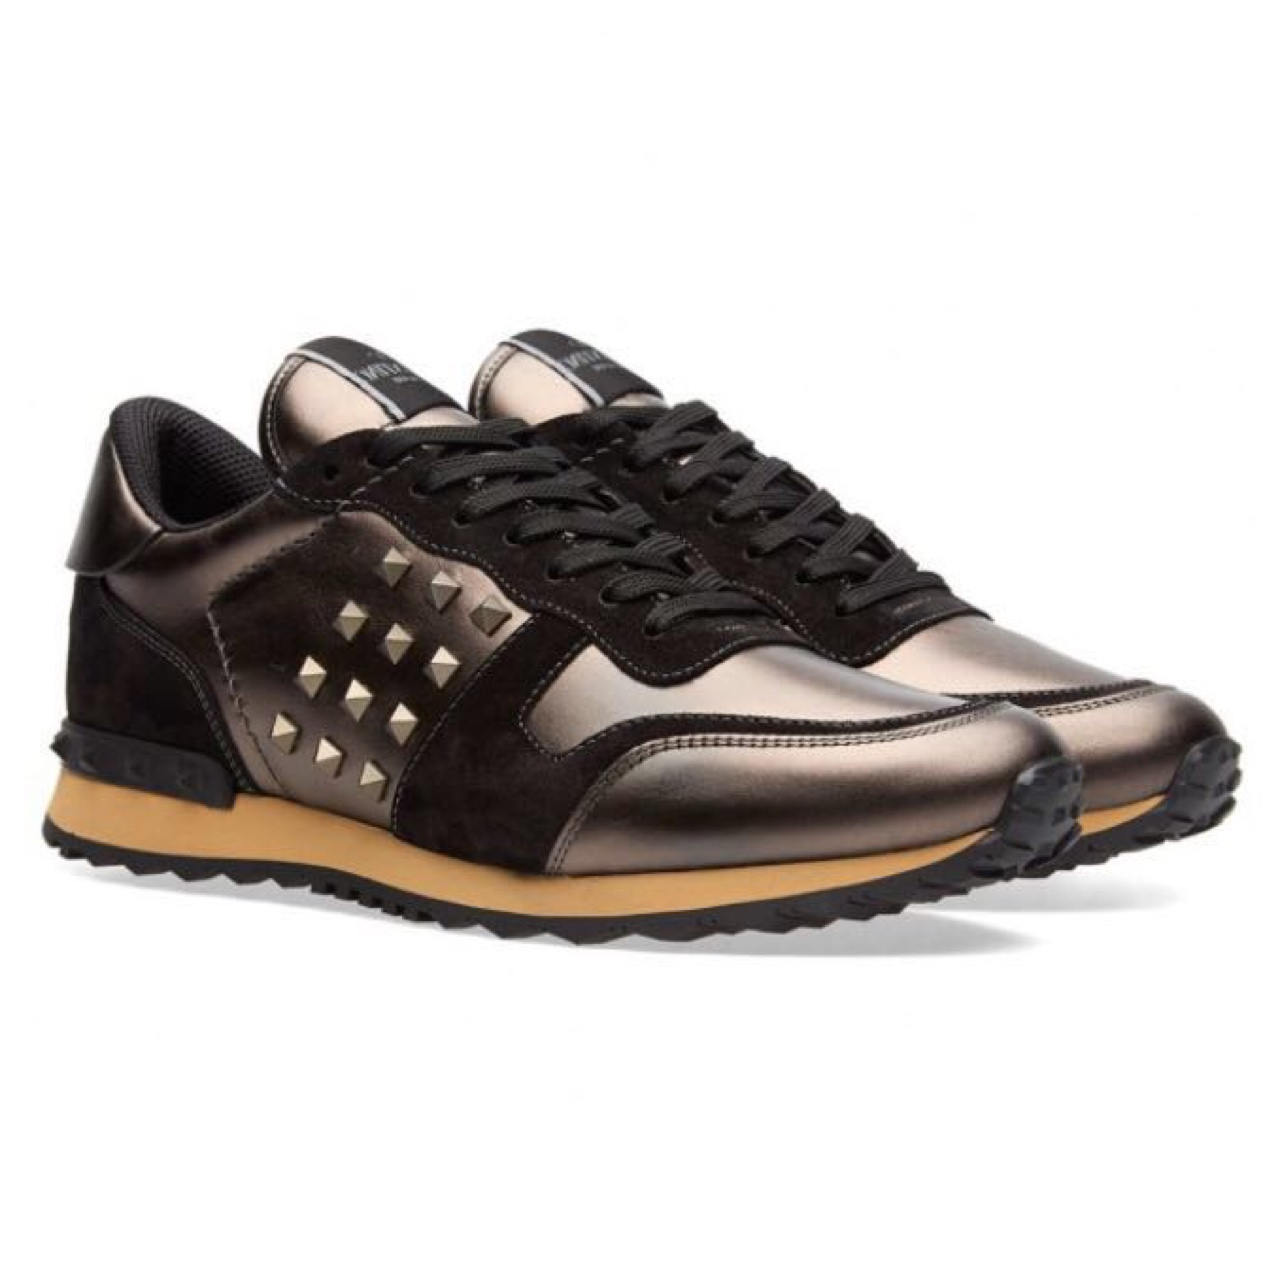 Valentino Rock Runners for sale